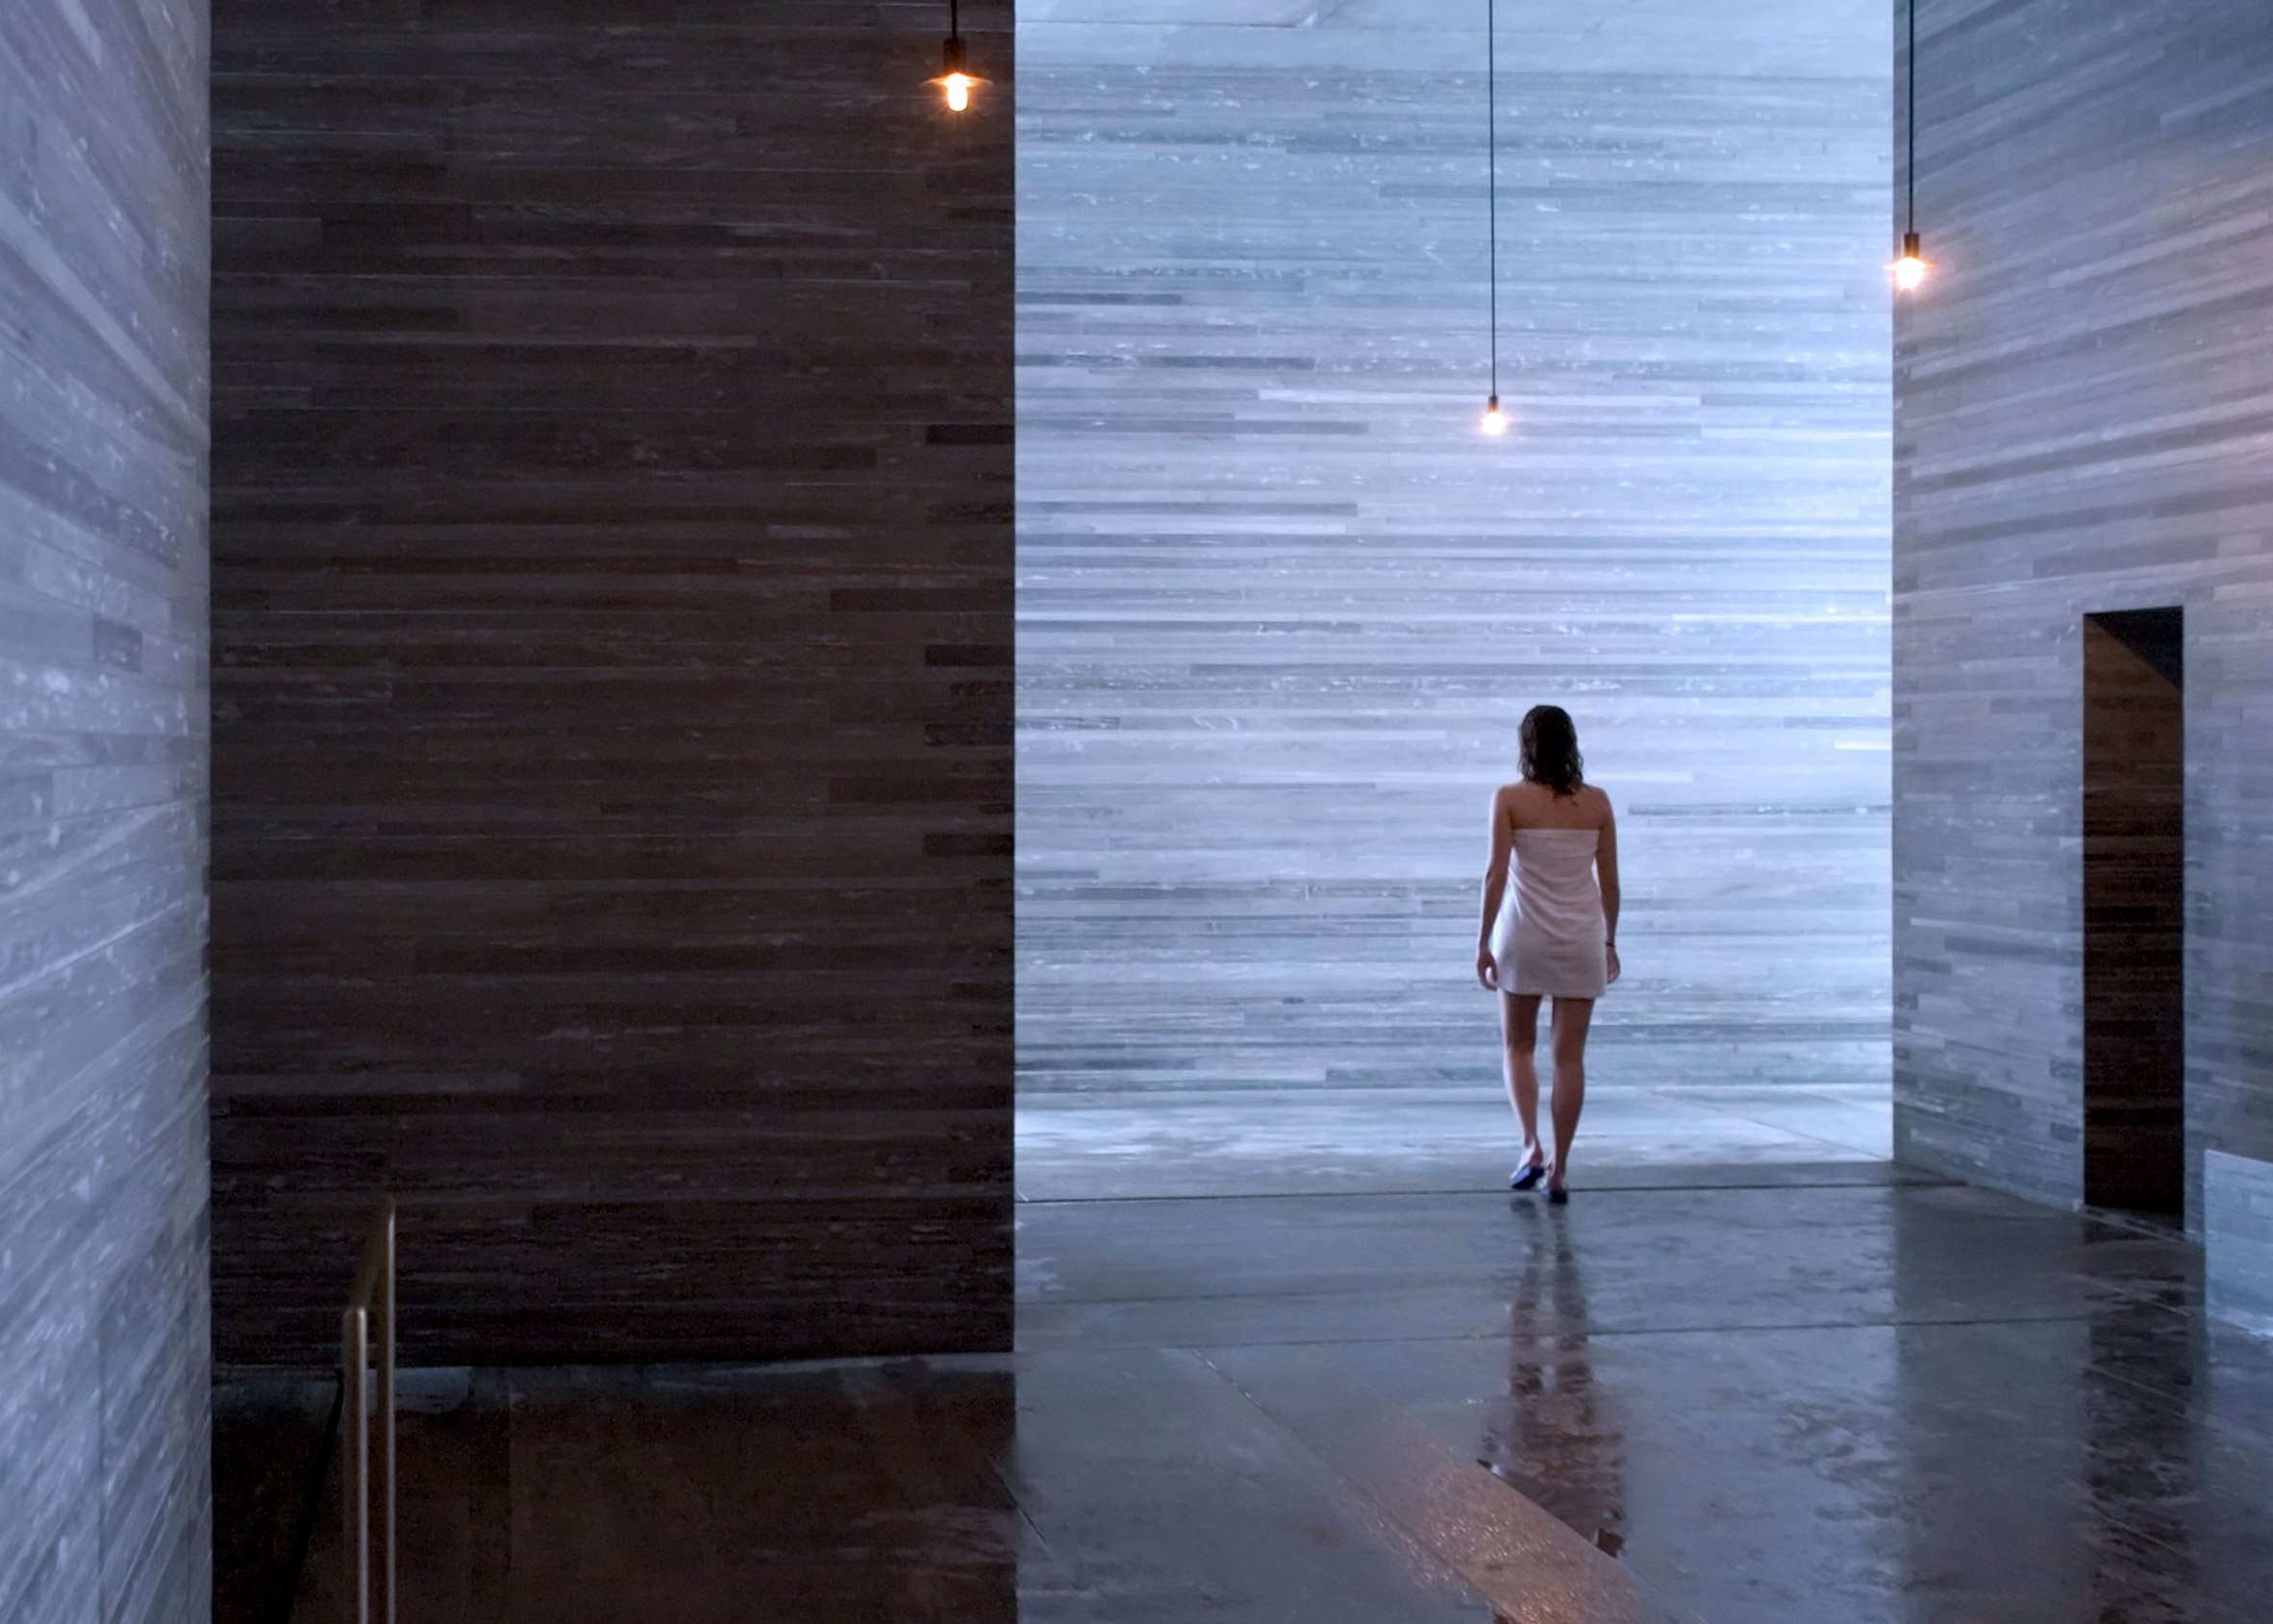 Vals by Peter Zumthor